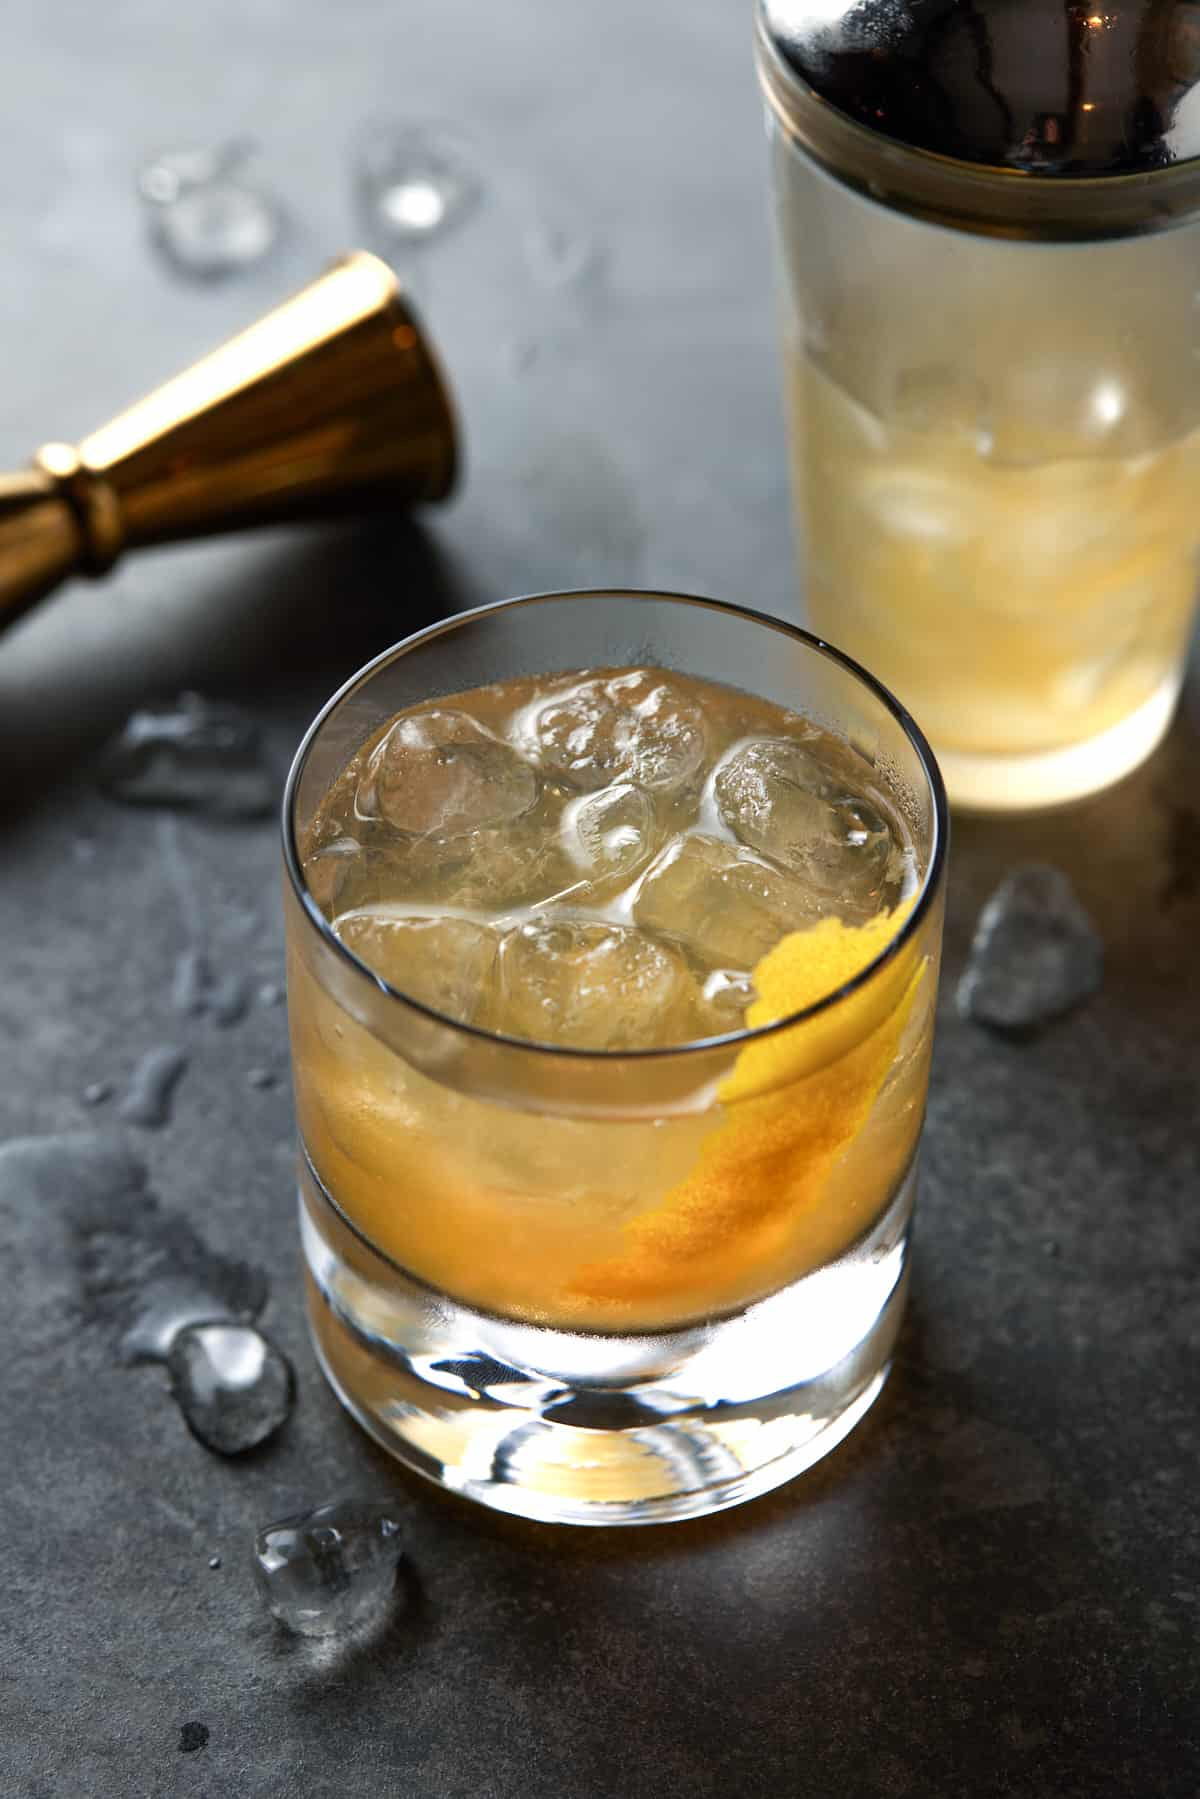 Low ball glass filled with ice and golden cocktail on a gray board.